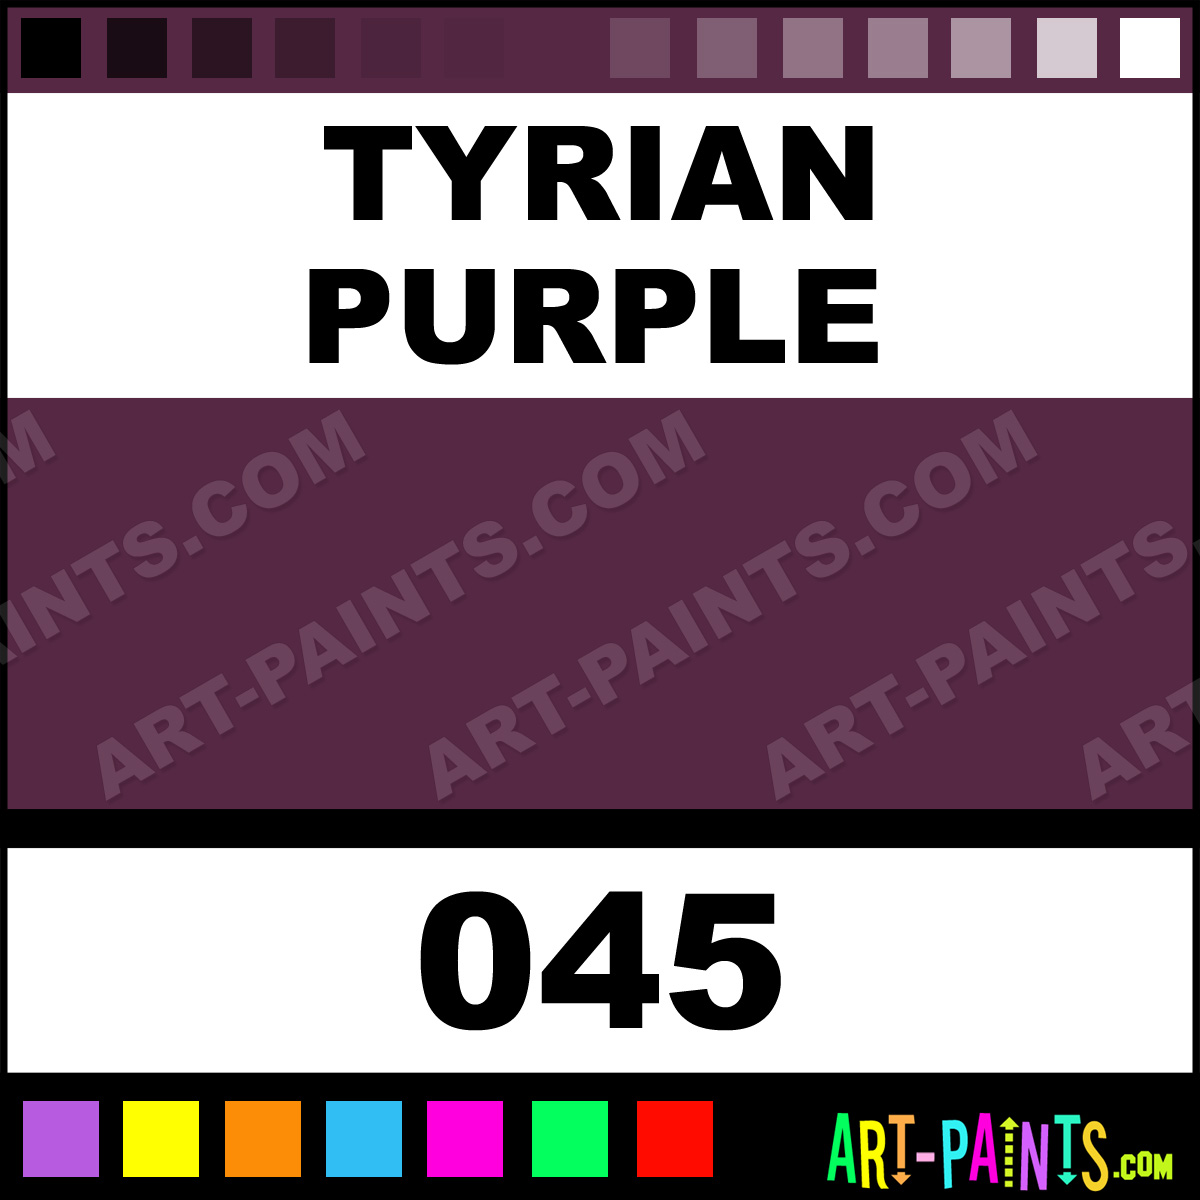 tyrian purple antique gouache paints 045 tyrian purple paint